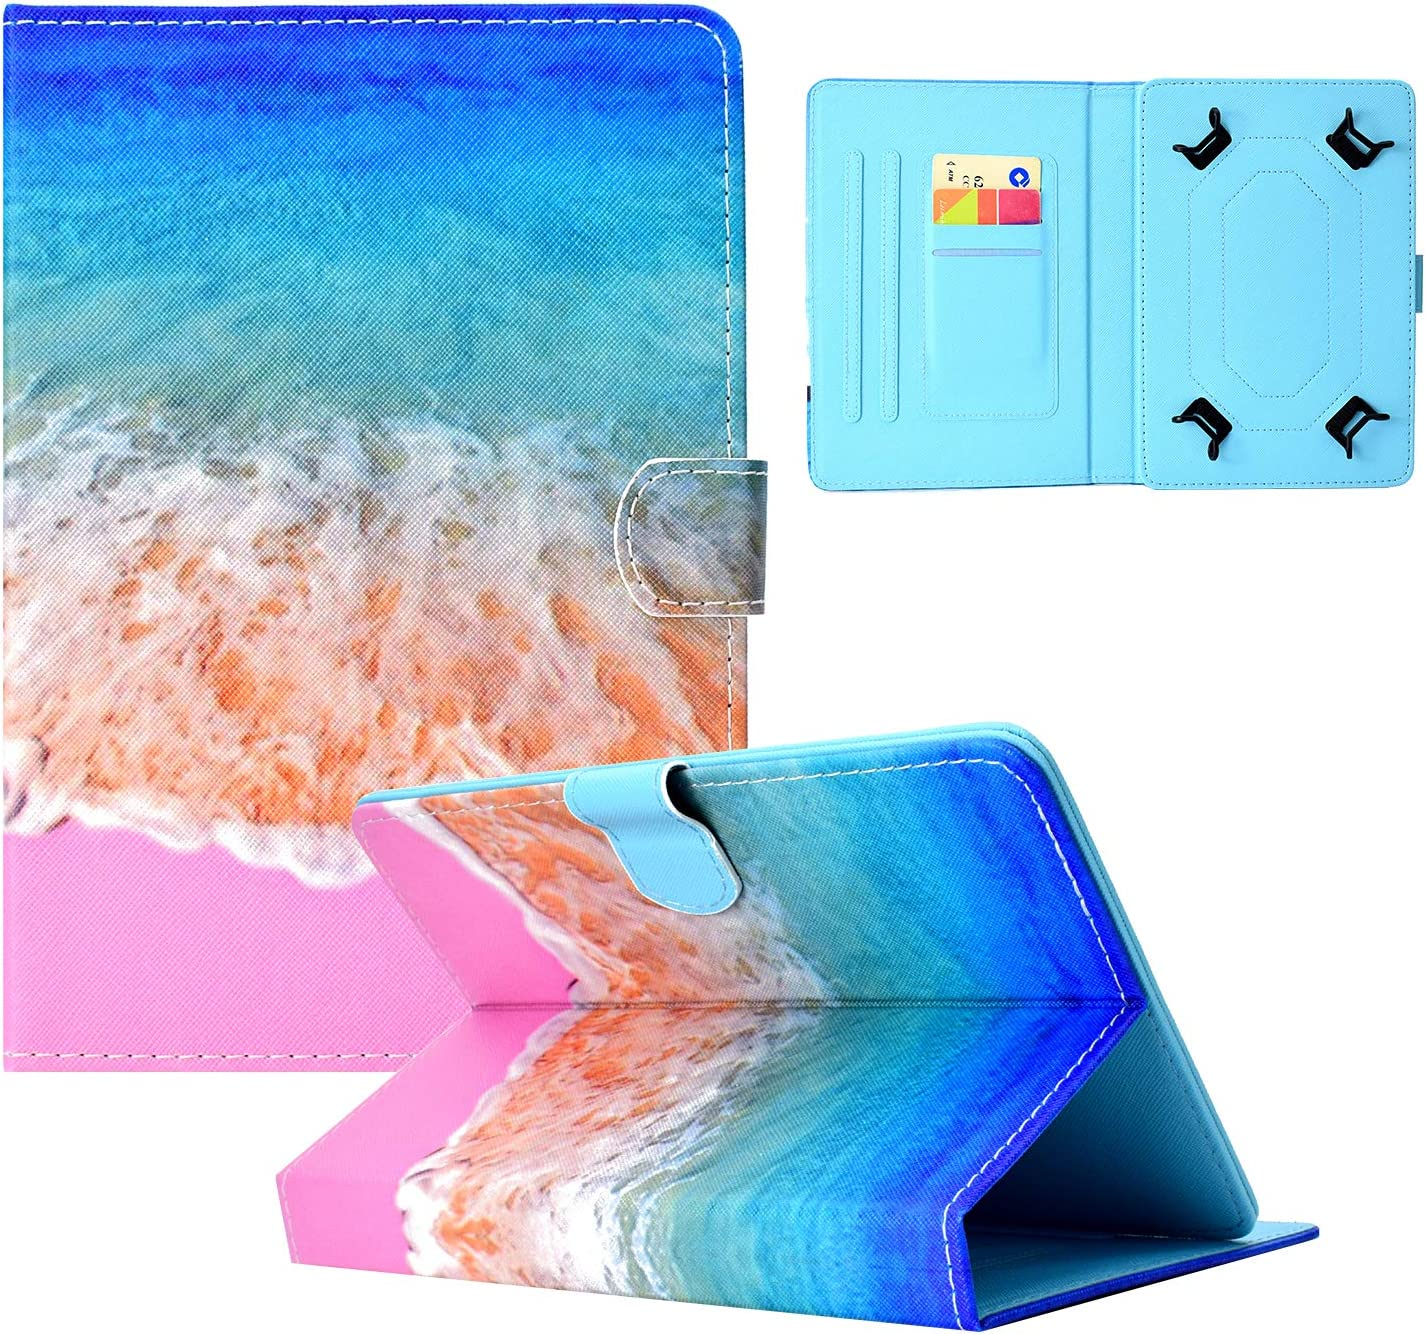 Dteck Universal Case for 7.9-8.5 Inch Tablet, Synthetic Leather Wallet Slim Stand Folio Cover for iPad Mini/Galaxy Tab/Lenovo/Dragon Touch/Walmart Onn/LG 7.9 8 8.1 8.3 8.4 Inch Tablet, Seabeach